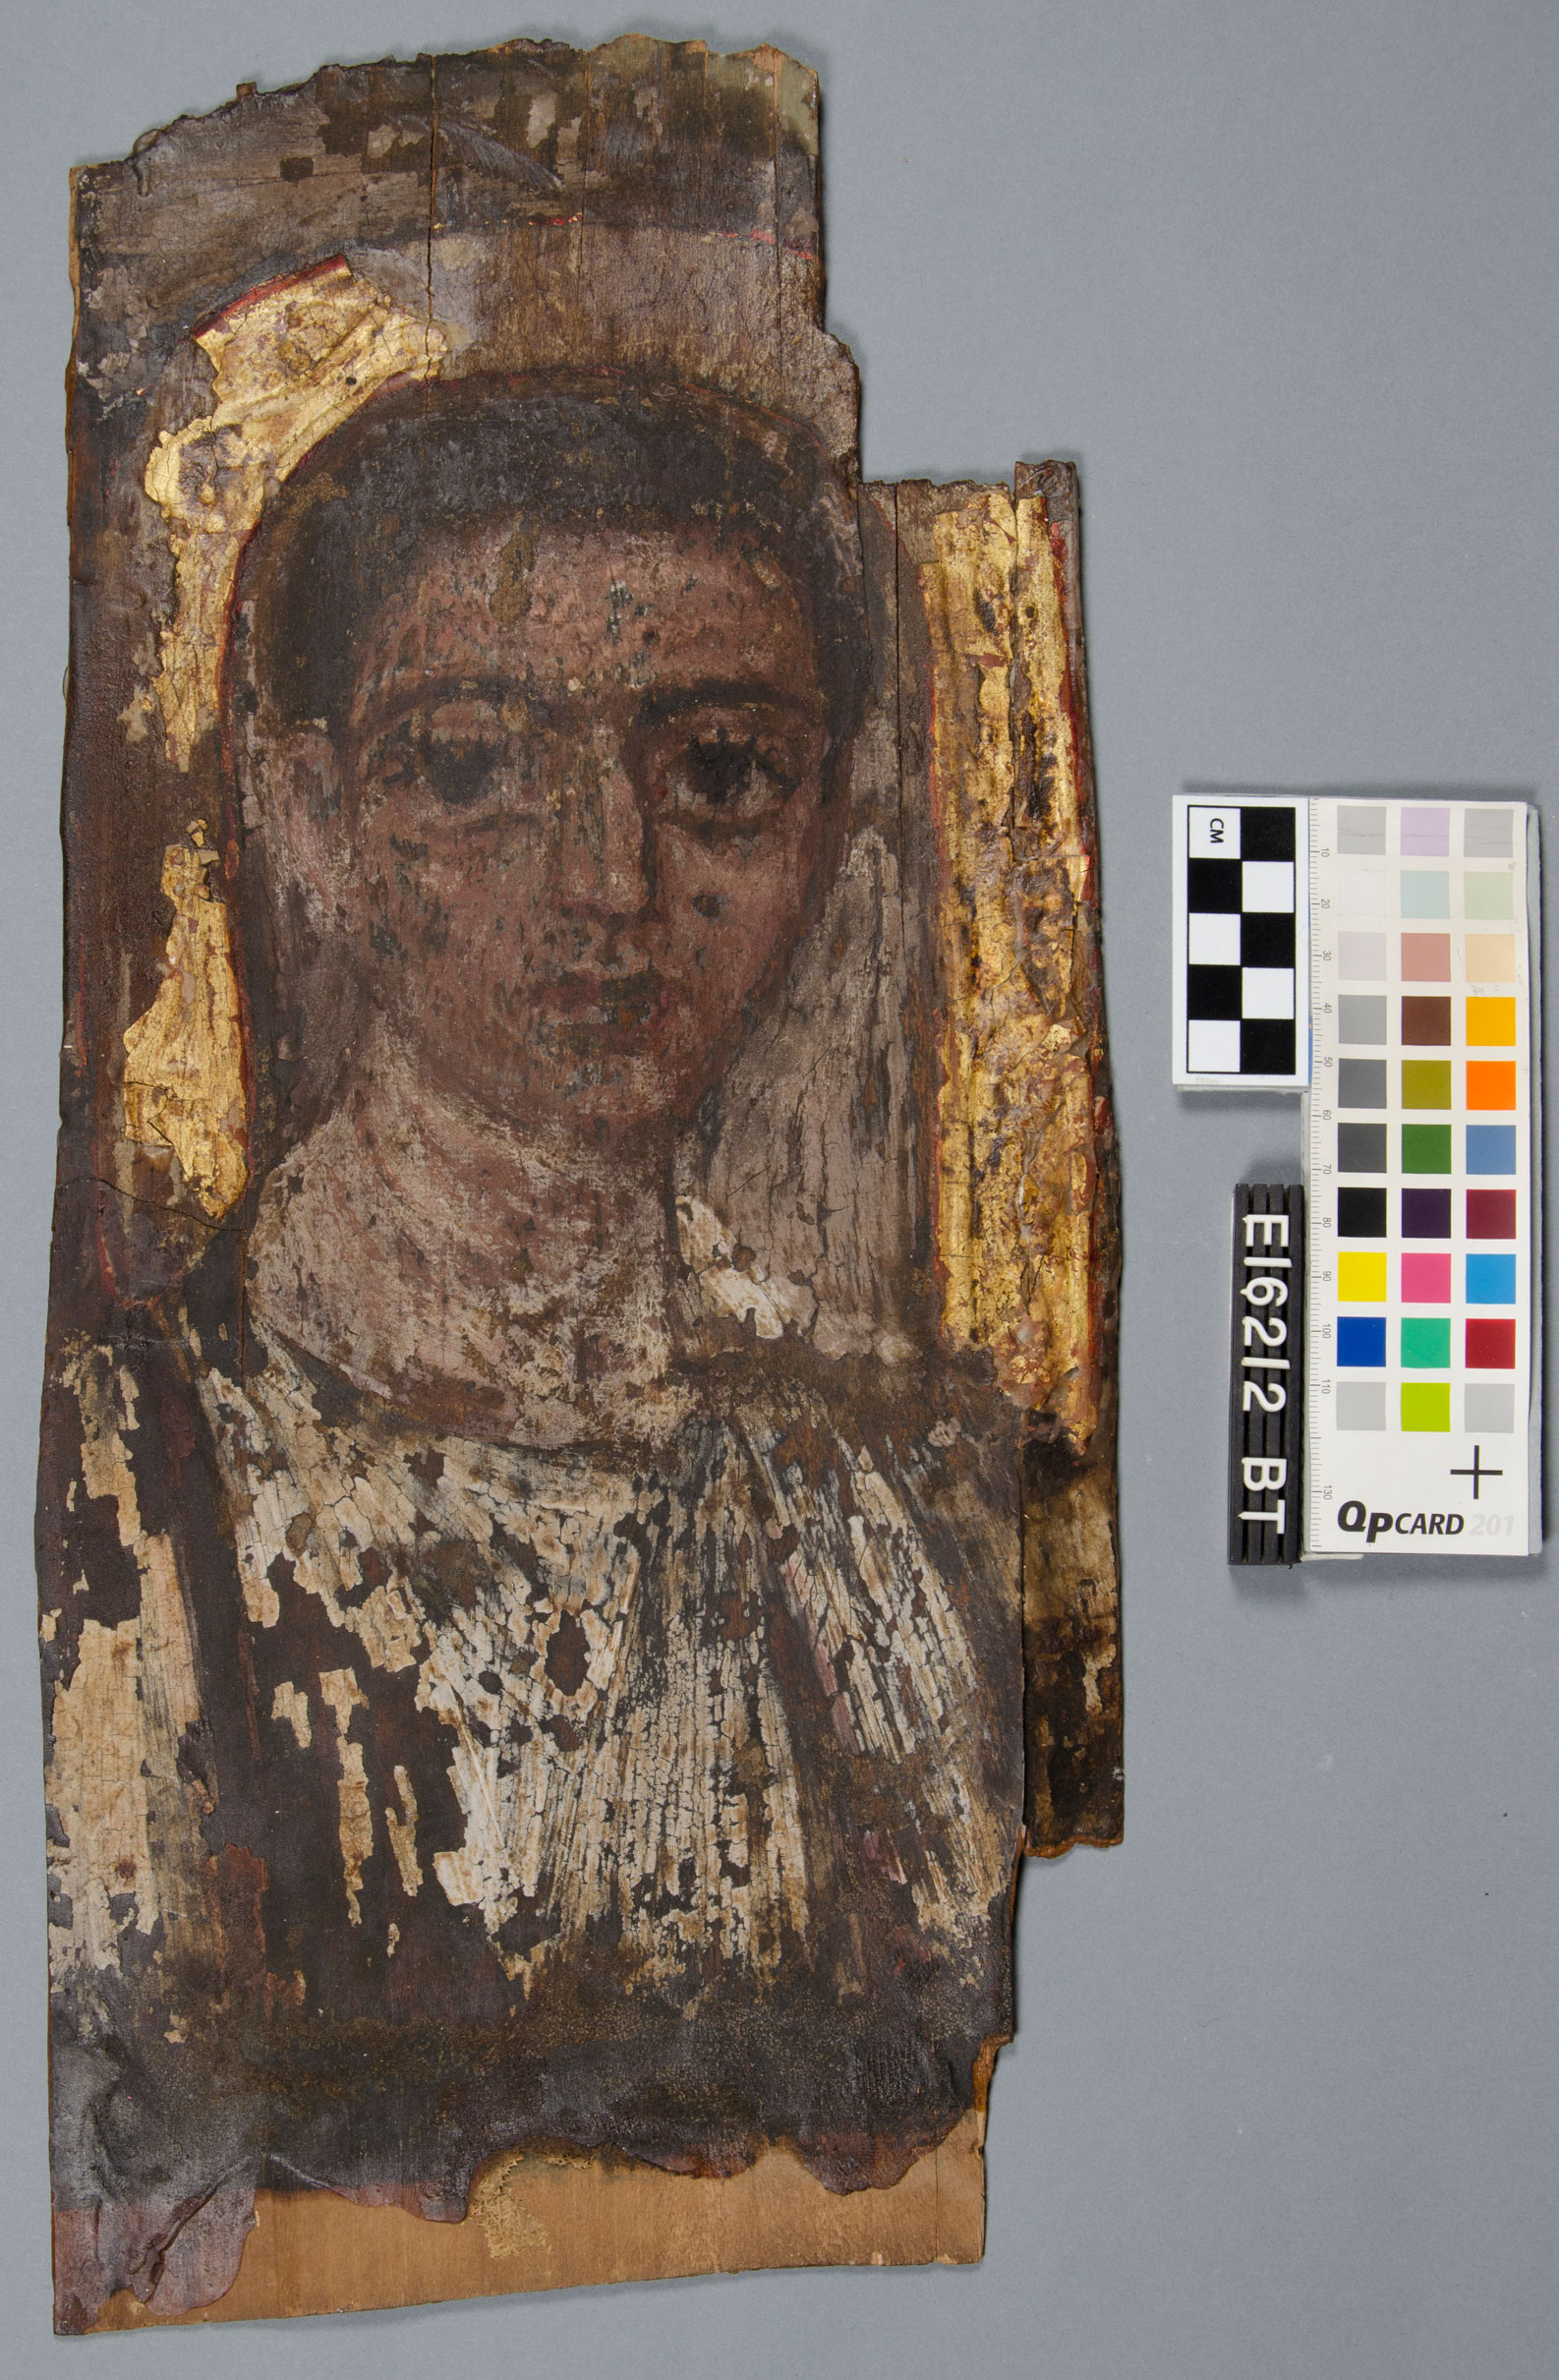 an analysis of the fayum paintings Analysis of fayum mummies has identified individual artists and techniques learn more in this howstuffworks now article.